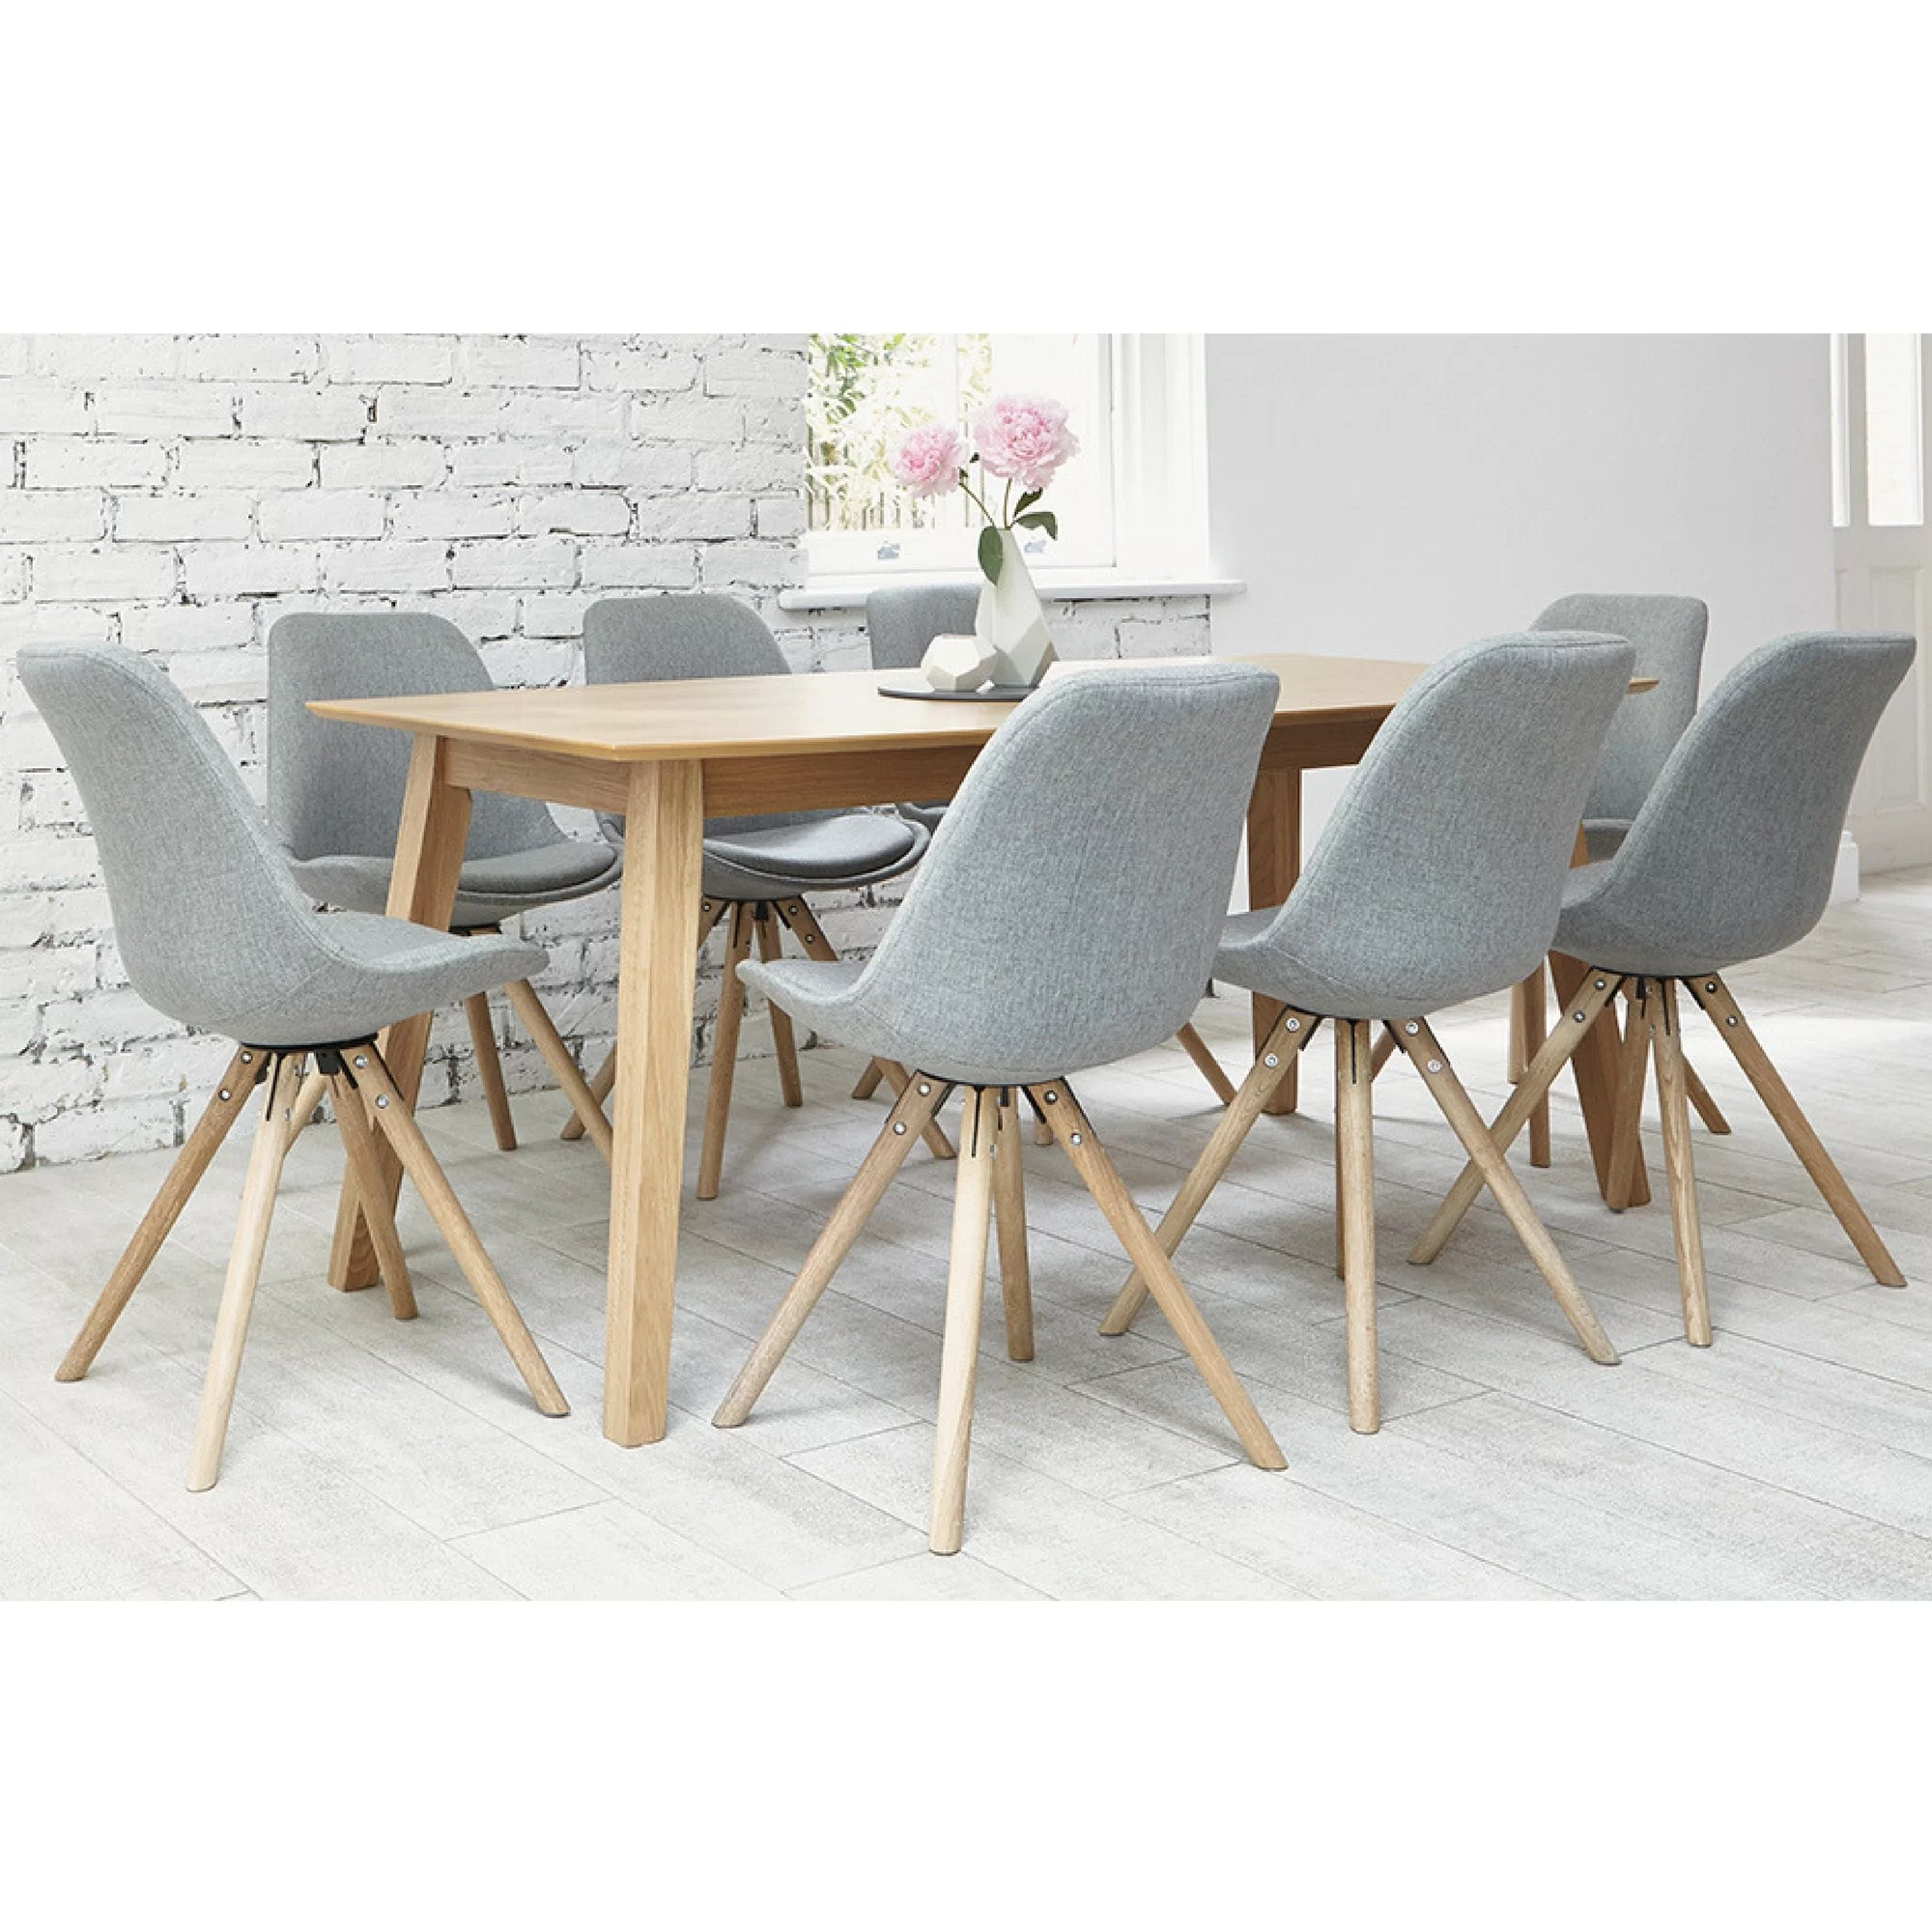 8 Chair Dining Set Kiris Dining Set With 8 Chairs